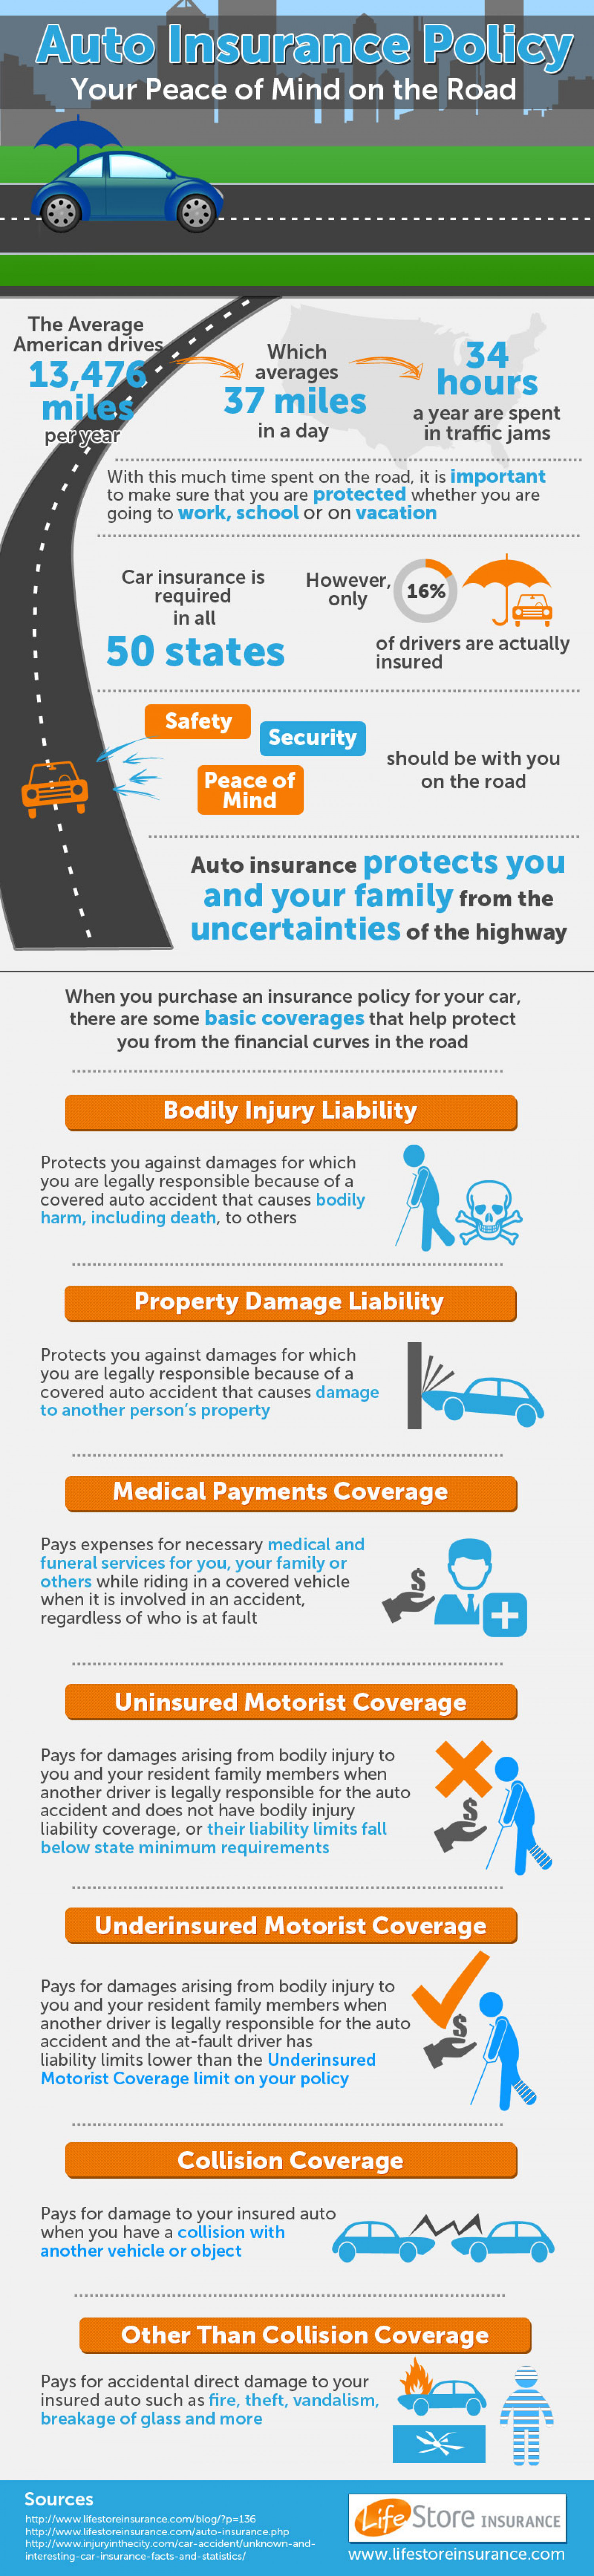 Auto Insurance Policy - Your Peace of Mind on the Road  Infographic